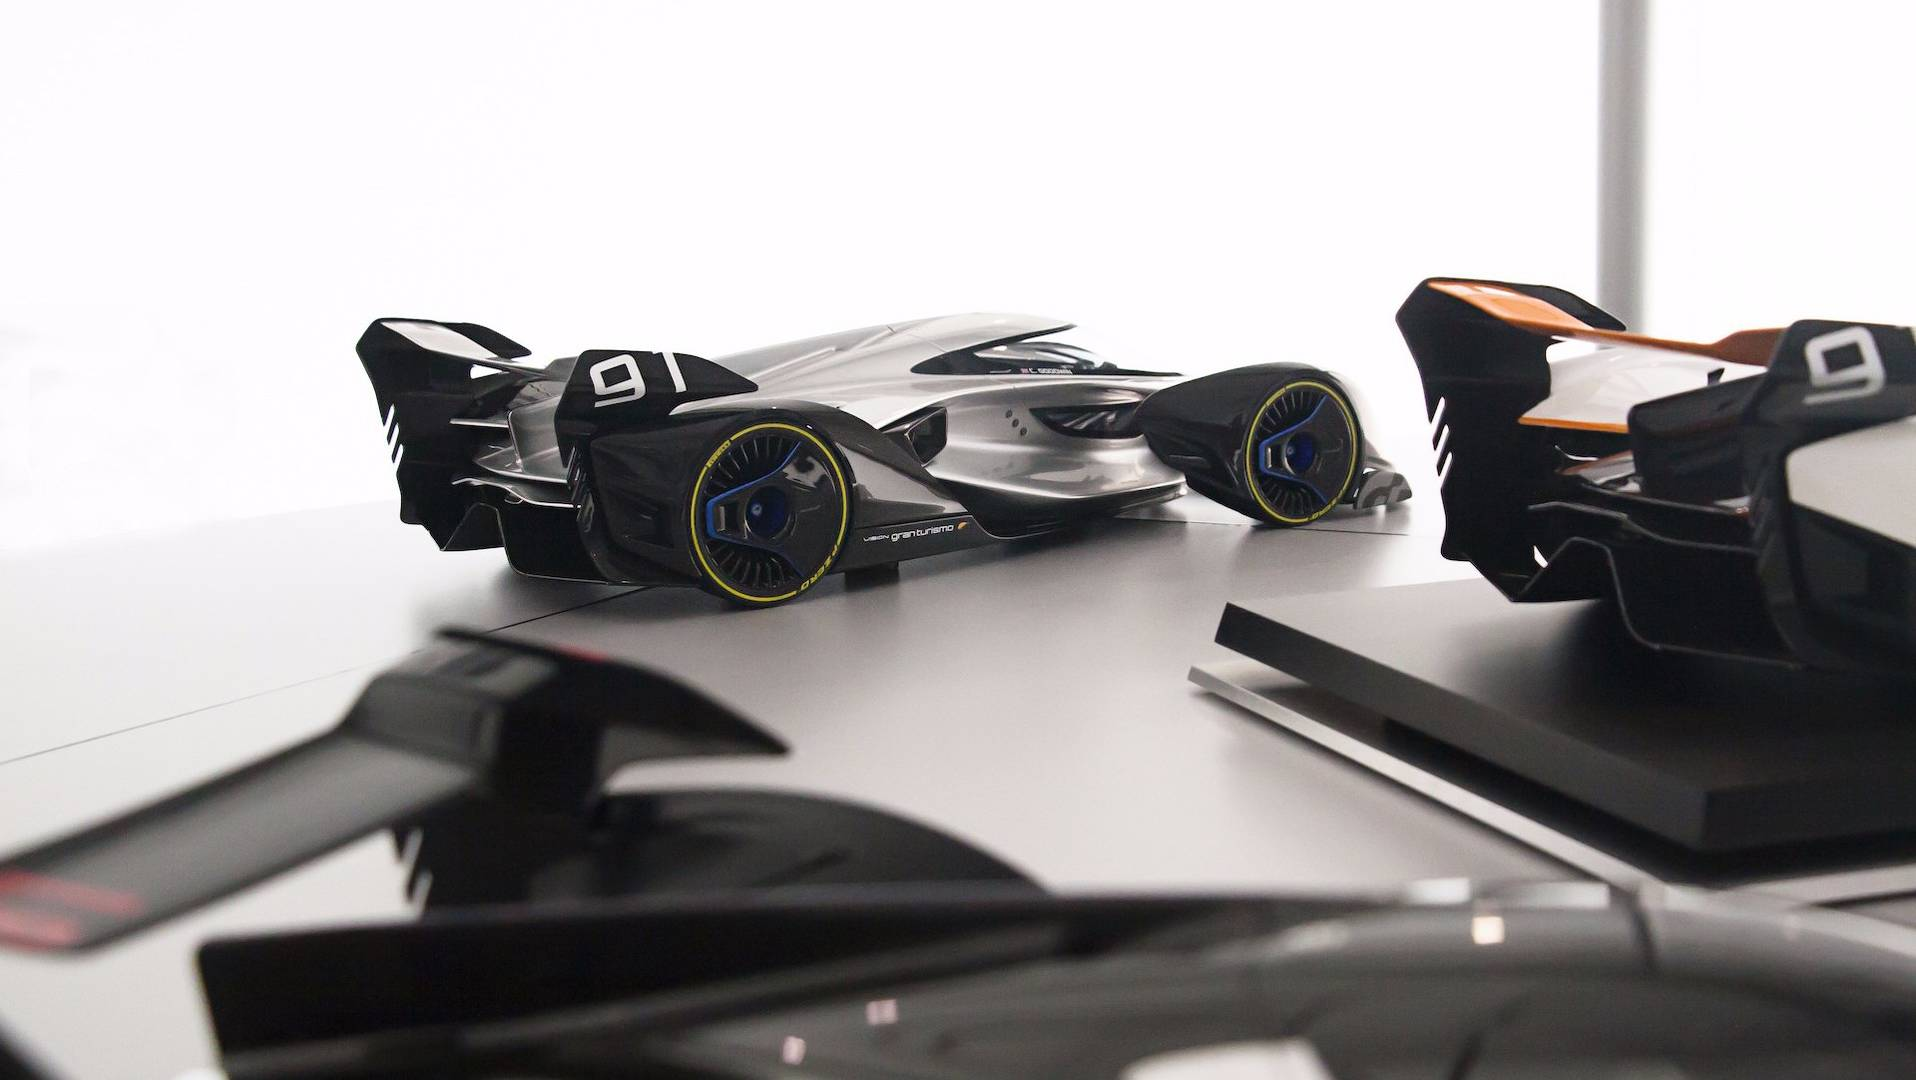 mclaren-ultimate-vision-gt-scale-model (29)